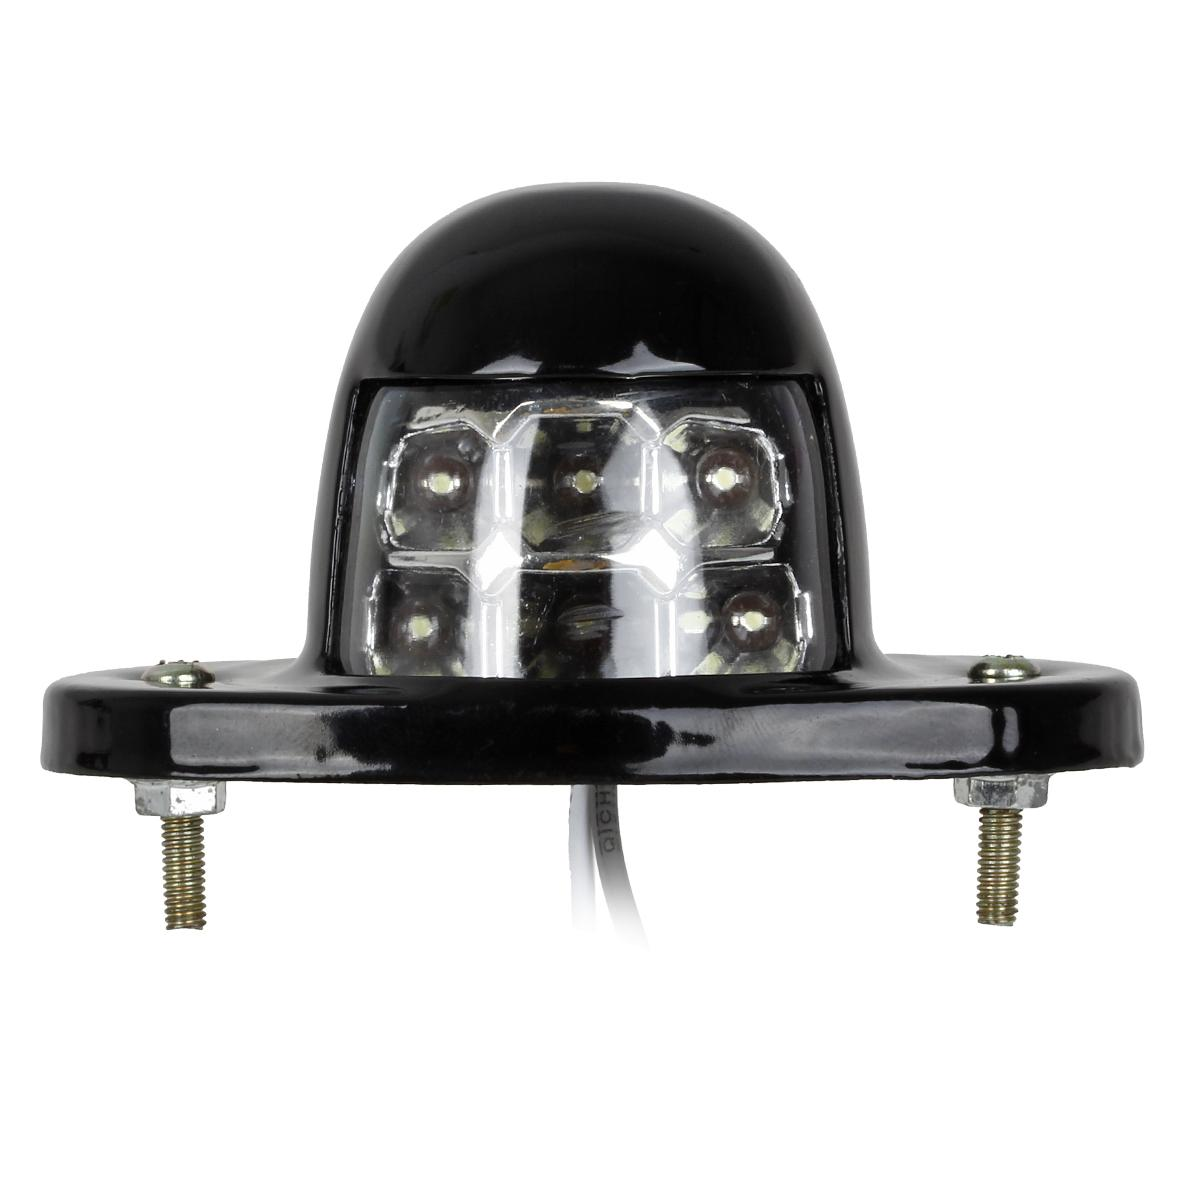 Trailer license plate light wiring - Tanish movies names